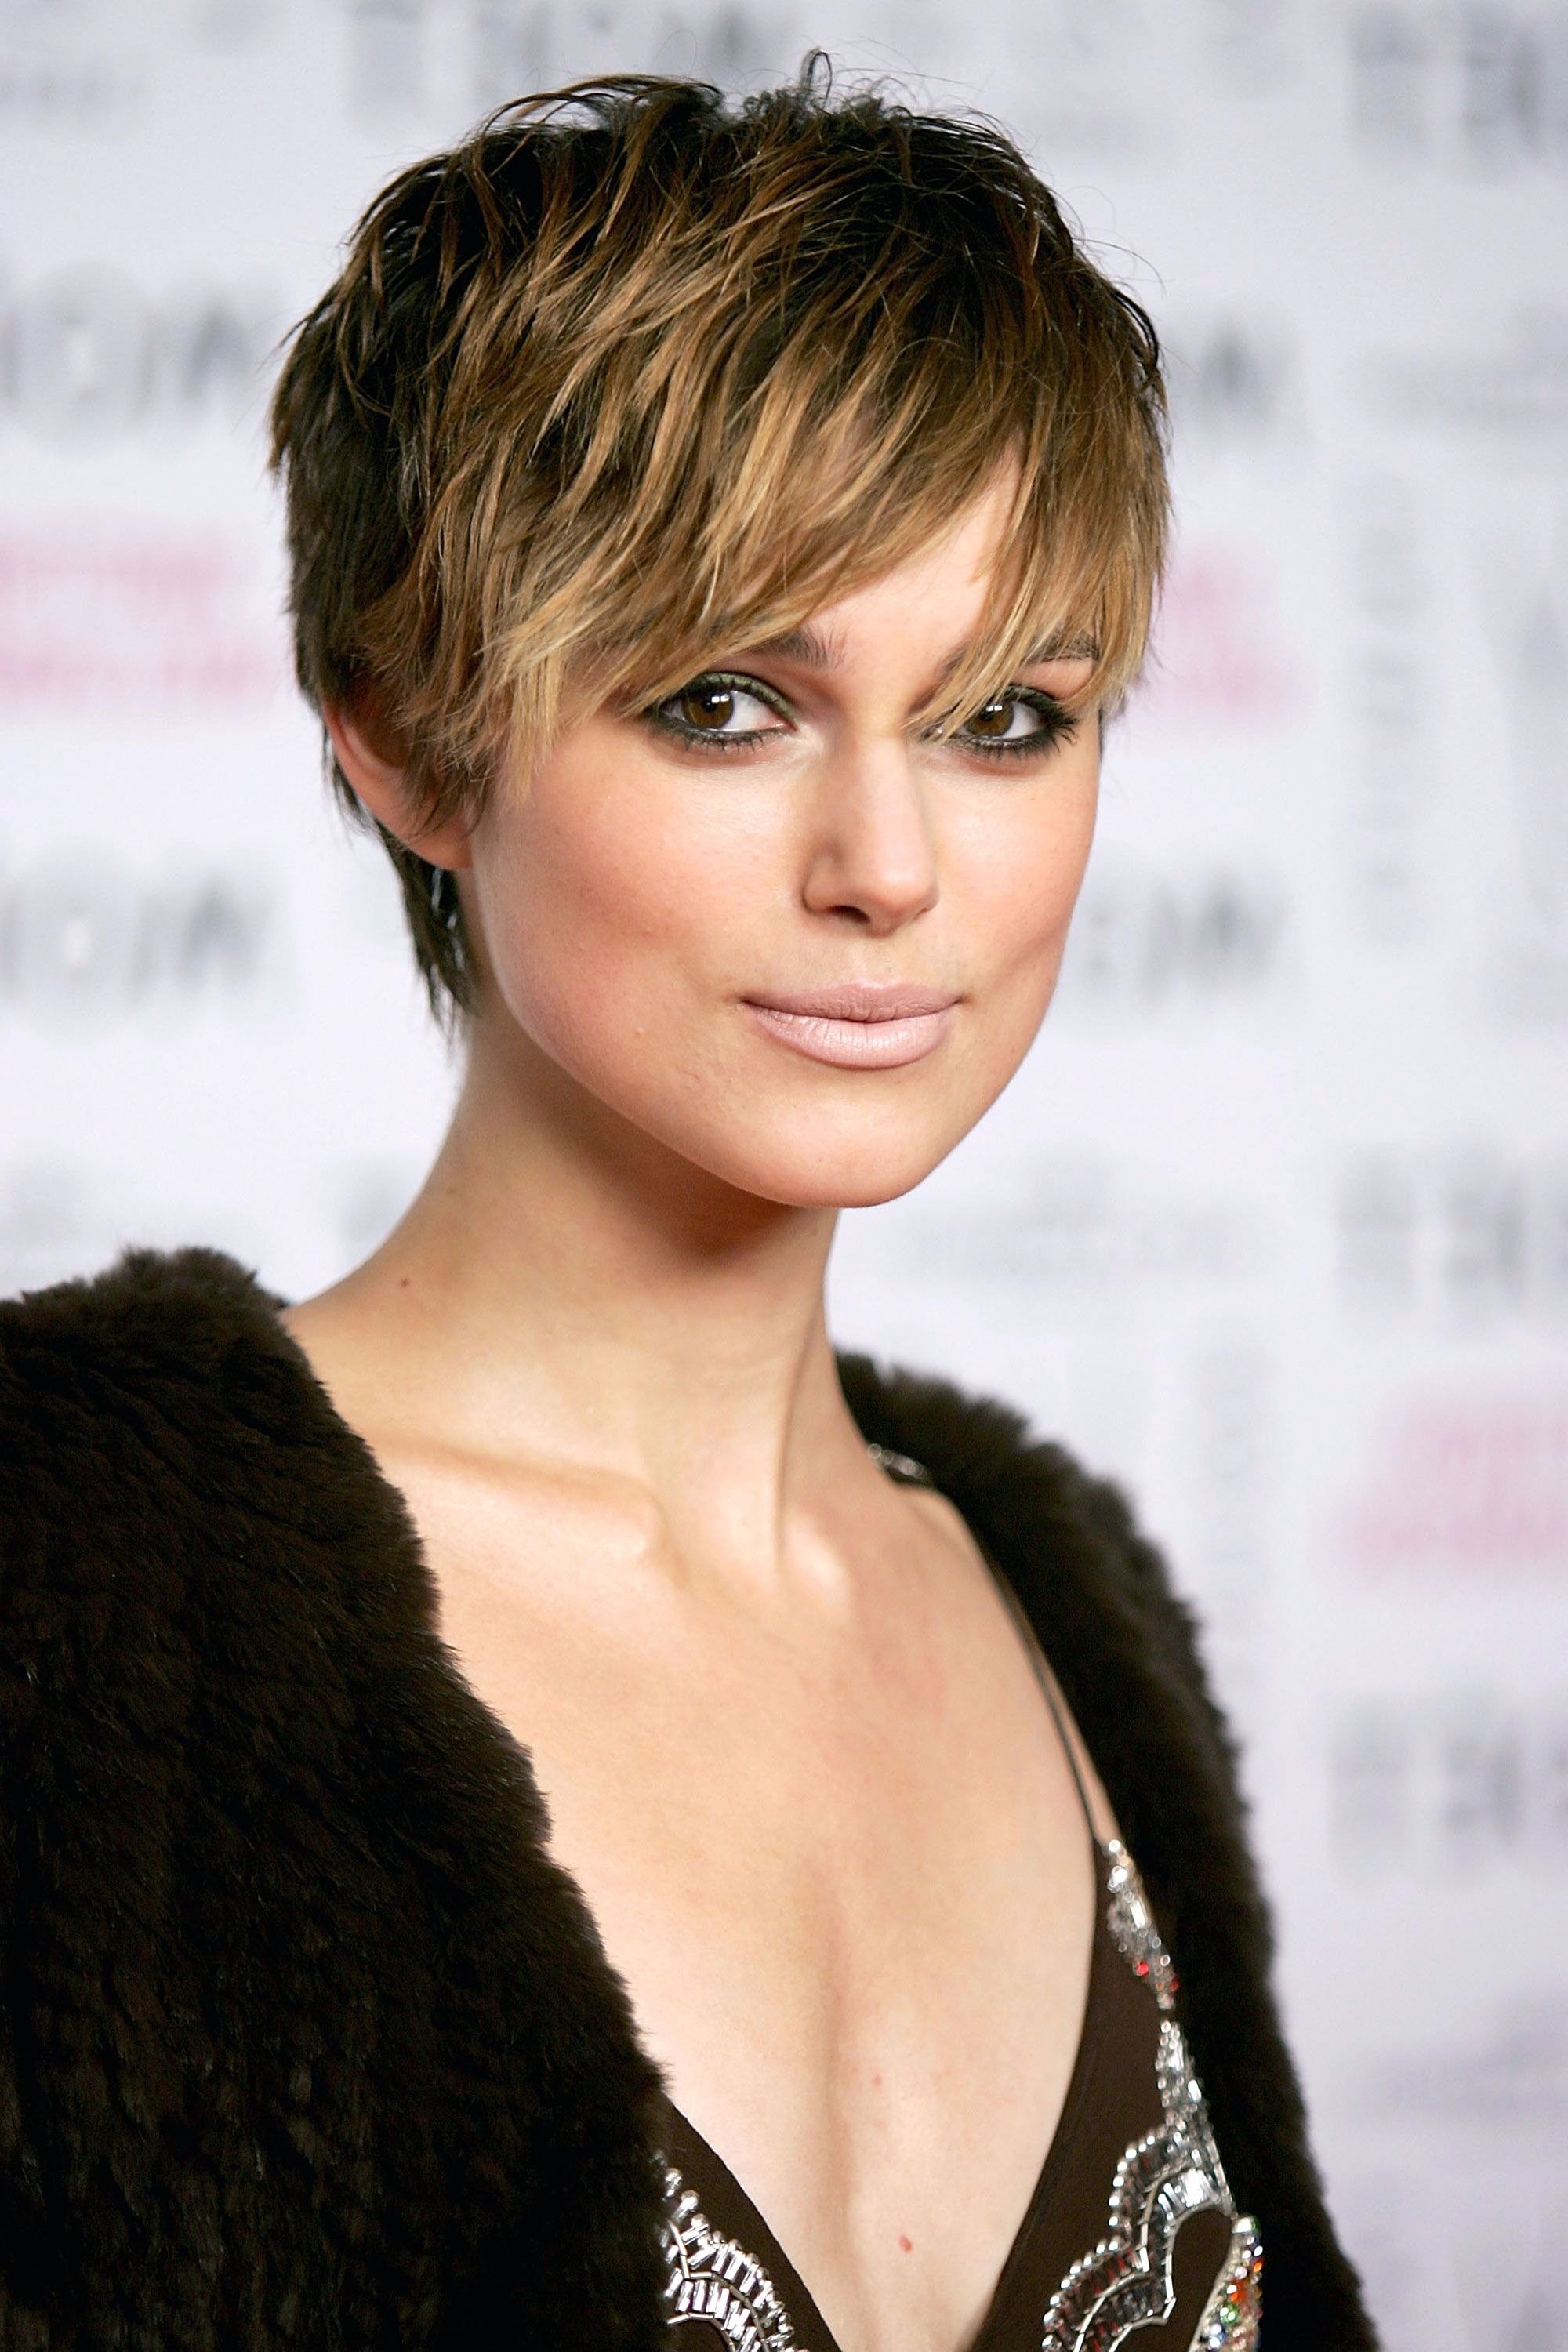 50+ Pixie Cuts We Love For 2018 – Short Pixie Hairstyles From With Regard To Chic Blonde Pixie Bob Hairstyles For Women Over (View 4 of 20)